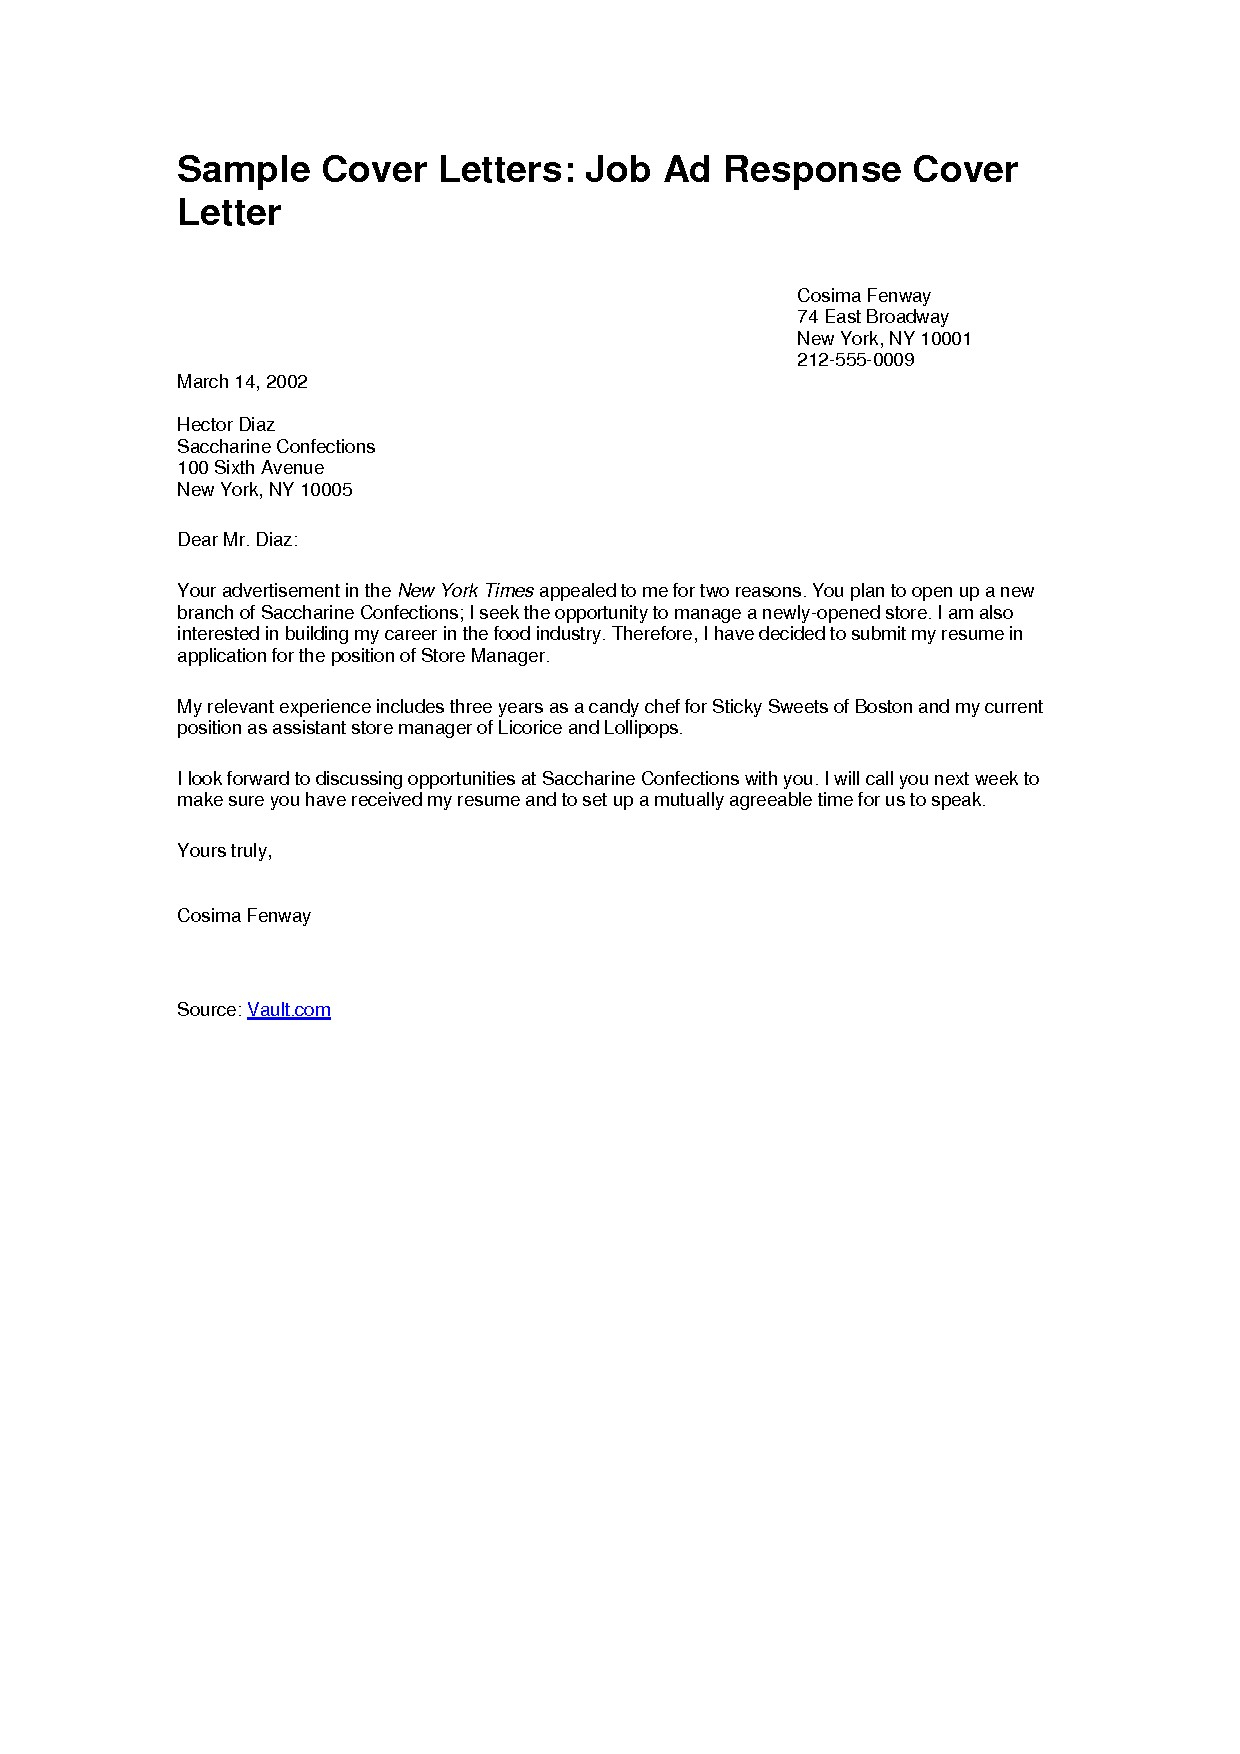 Cover Letter Template for Human Resources - Samples Of Job Cover Letters Acurnamedia